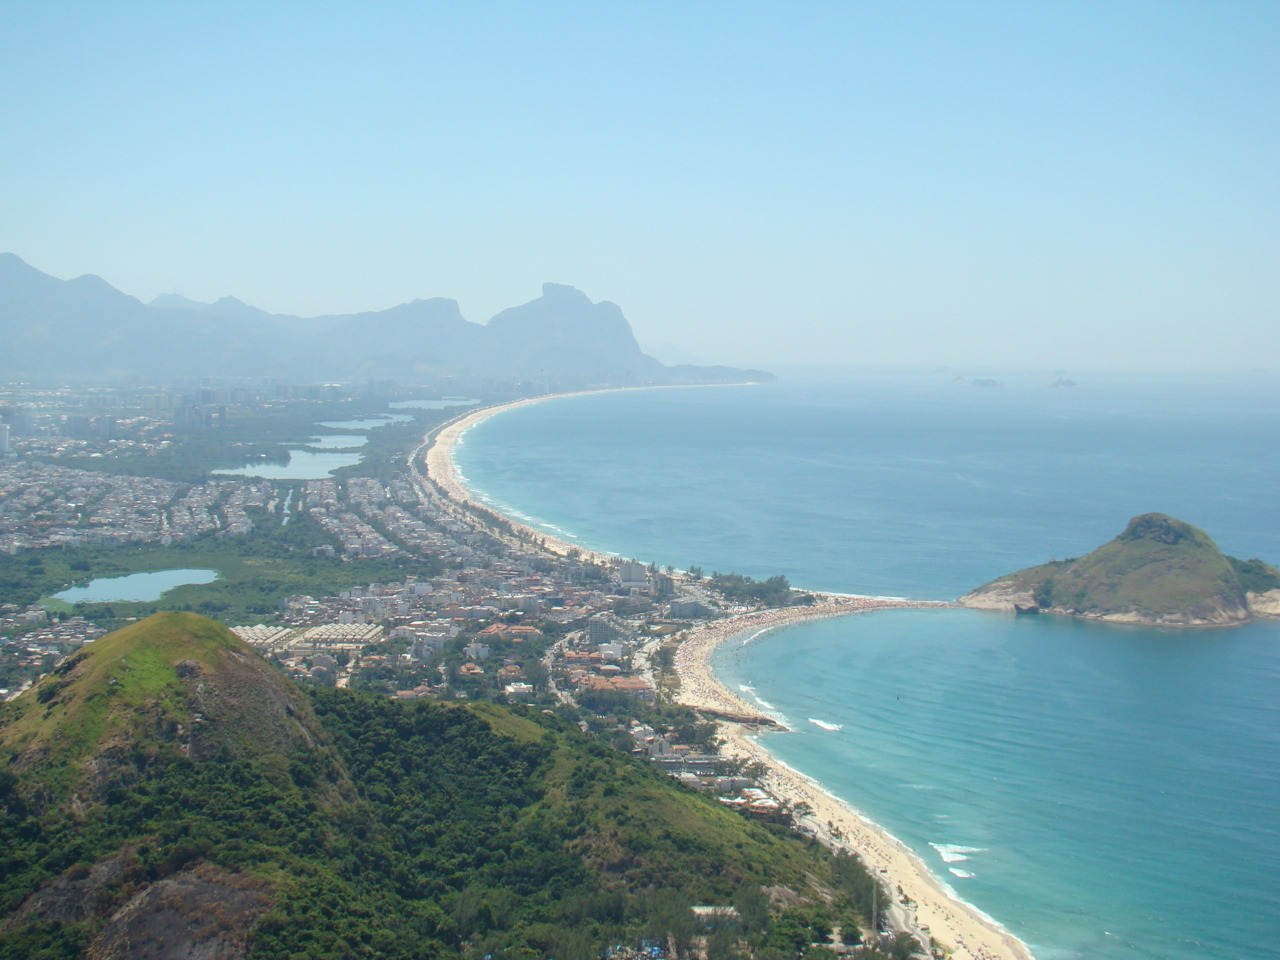 The other side of Rio. The best for surf, seafood, shopping. And the wildest beach of the city - Grumary.